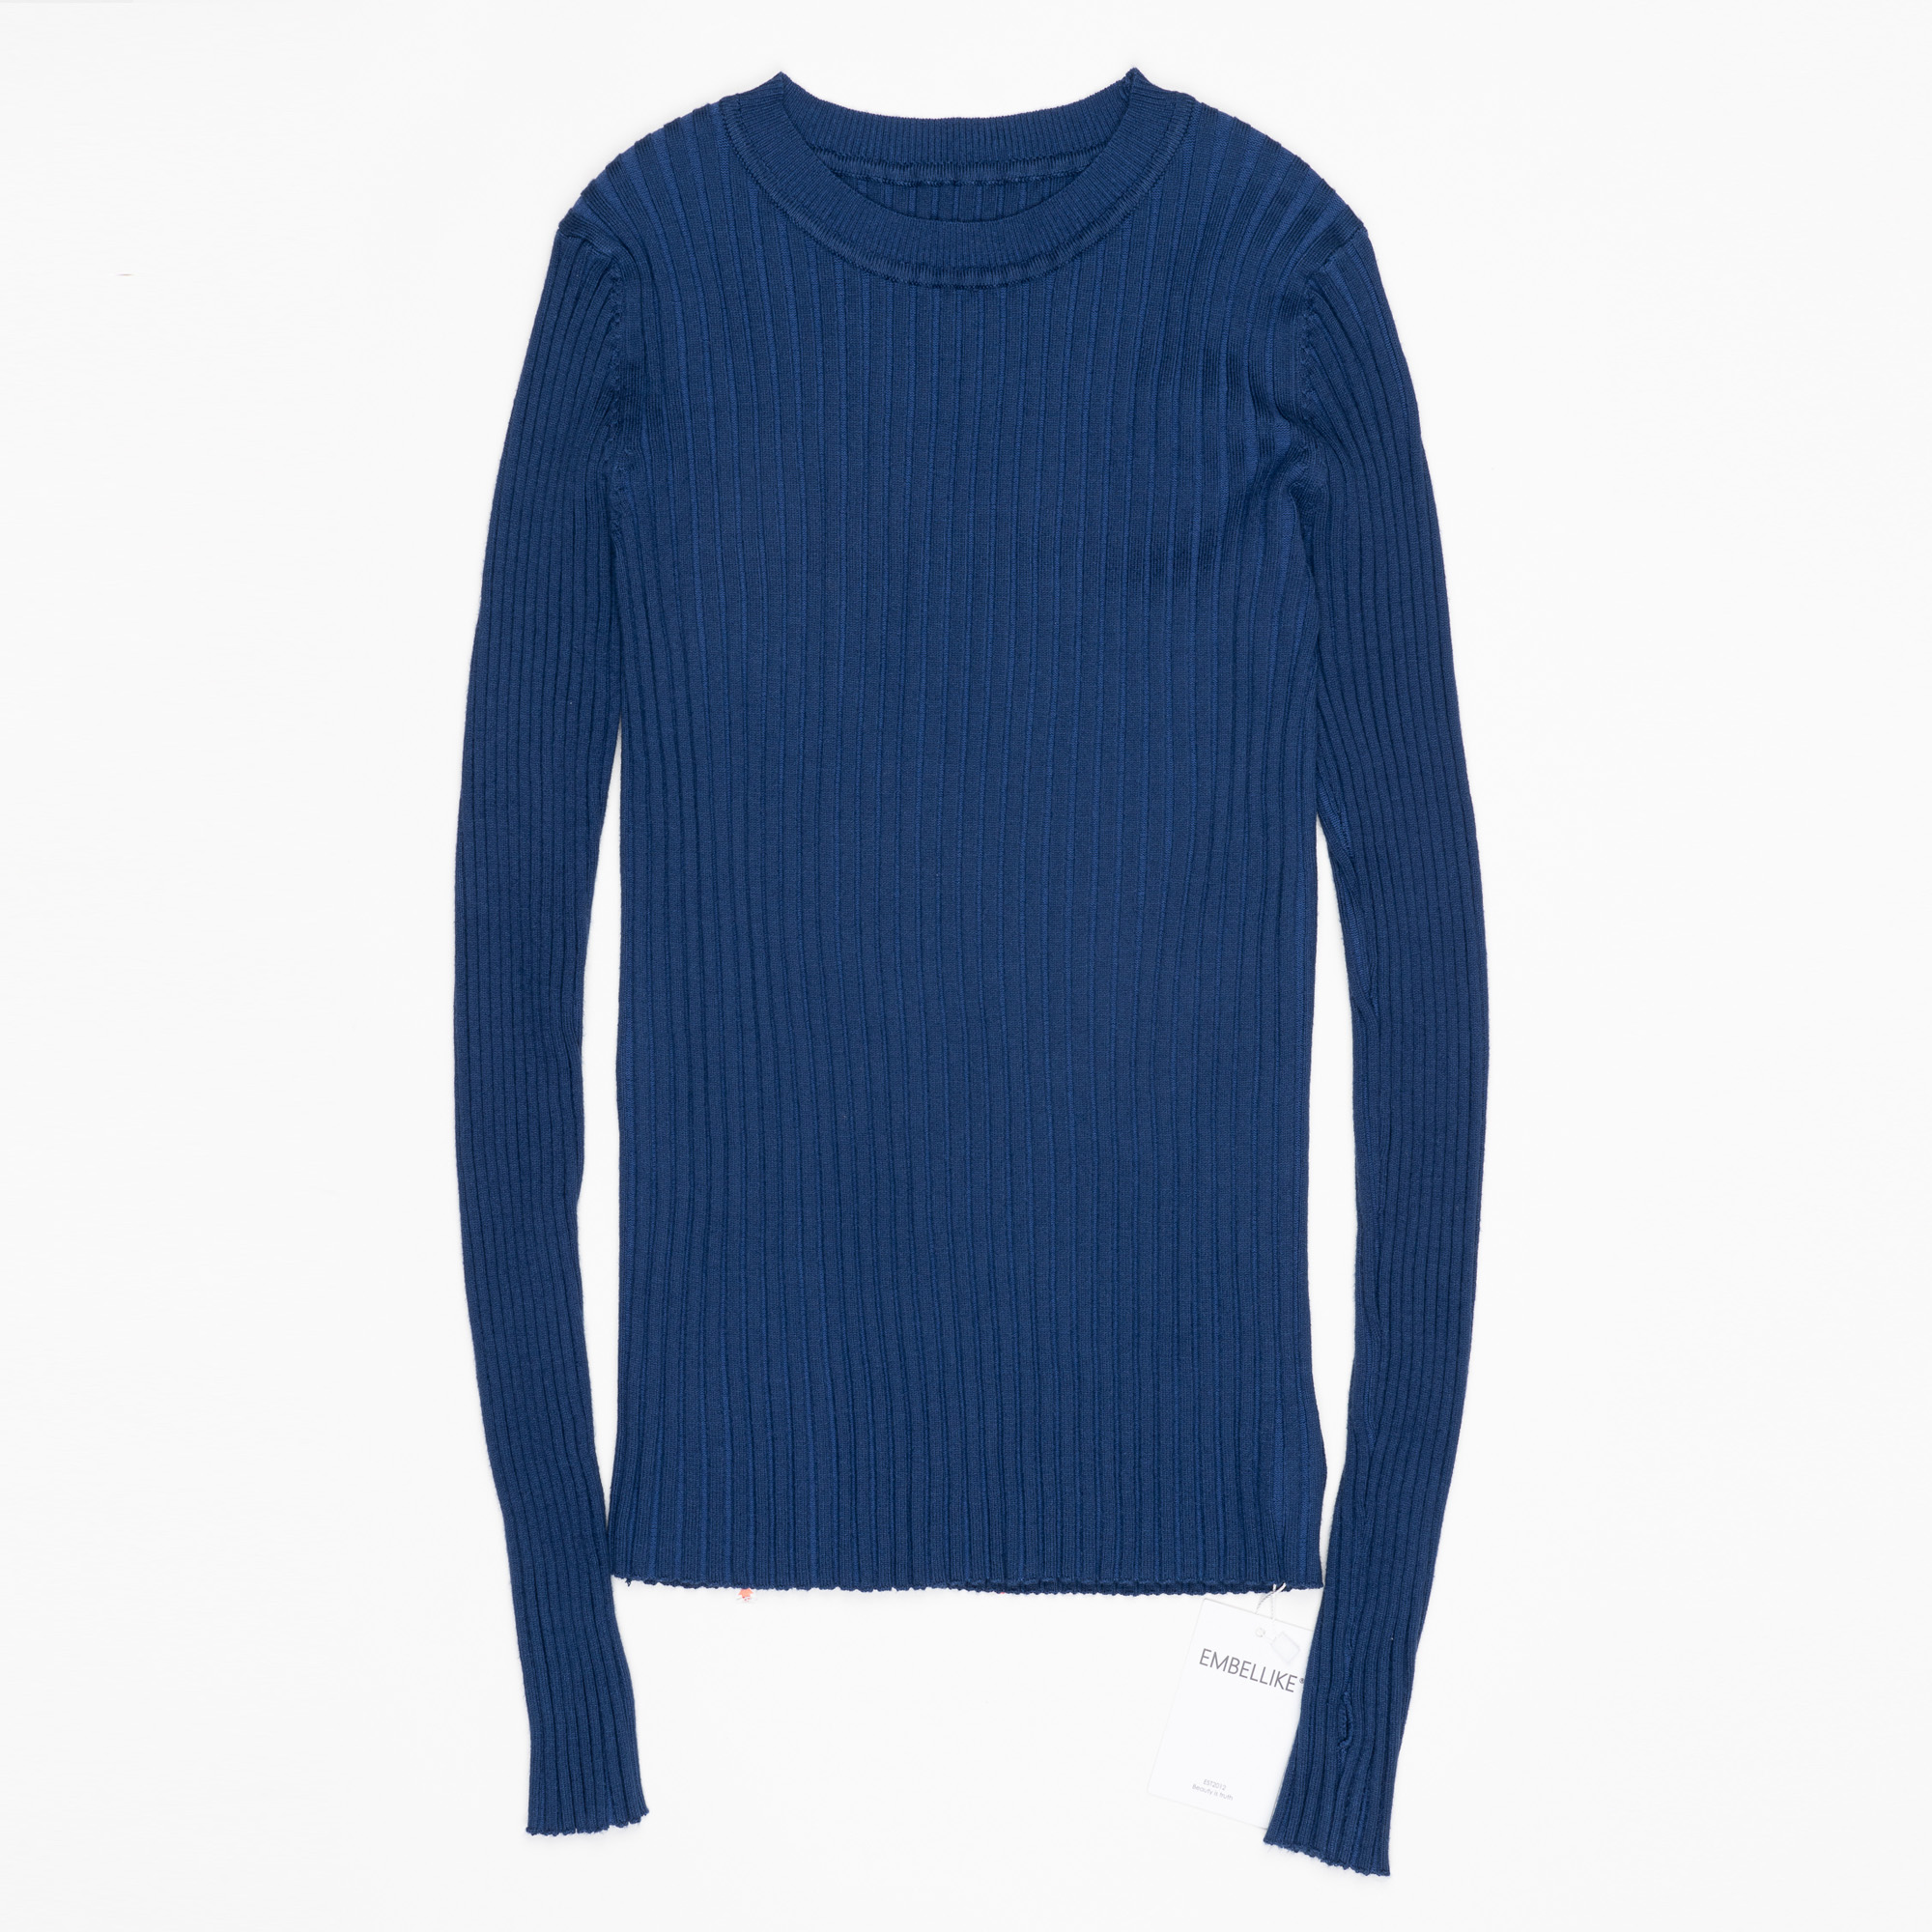 Women Sweater Pullover Basic Ribbed Sweaters Cotton Tops Knitted Solid Crew Neck With Thumb Hole 9